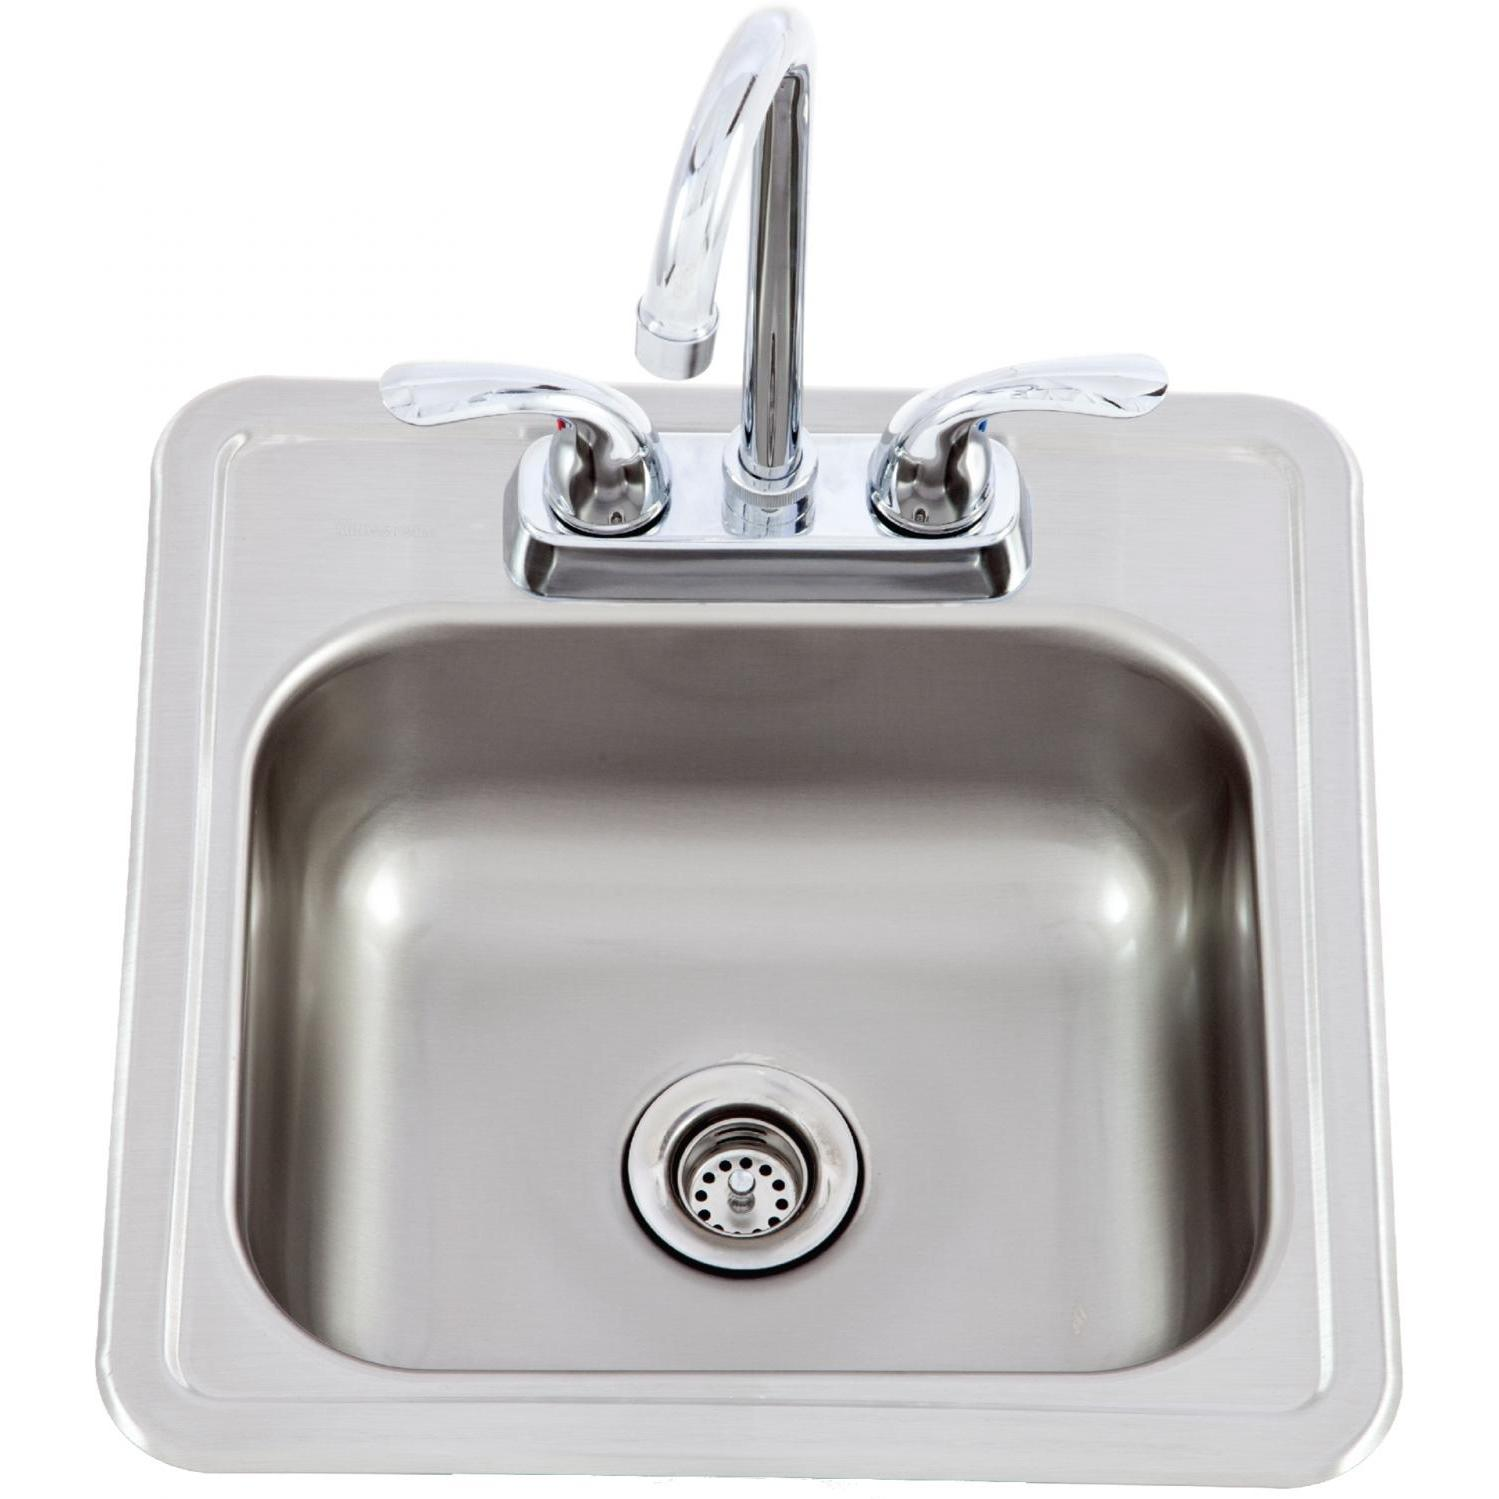 Lion 15 X 15 Outdoor Rated Stainless Steel Sink With Hot Cold Faucet Sink Outdoor Kitchen Bars Bar Faucets